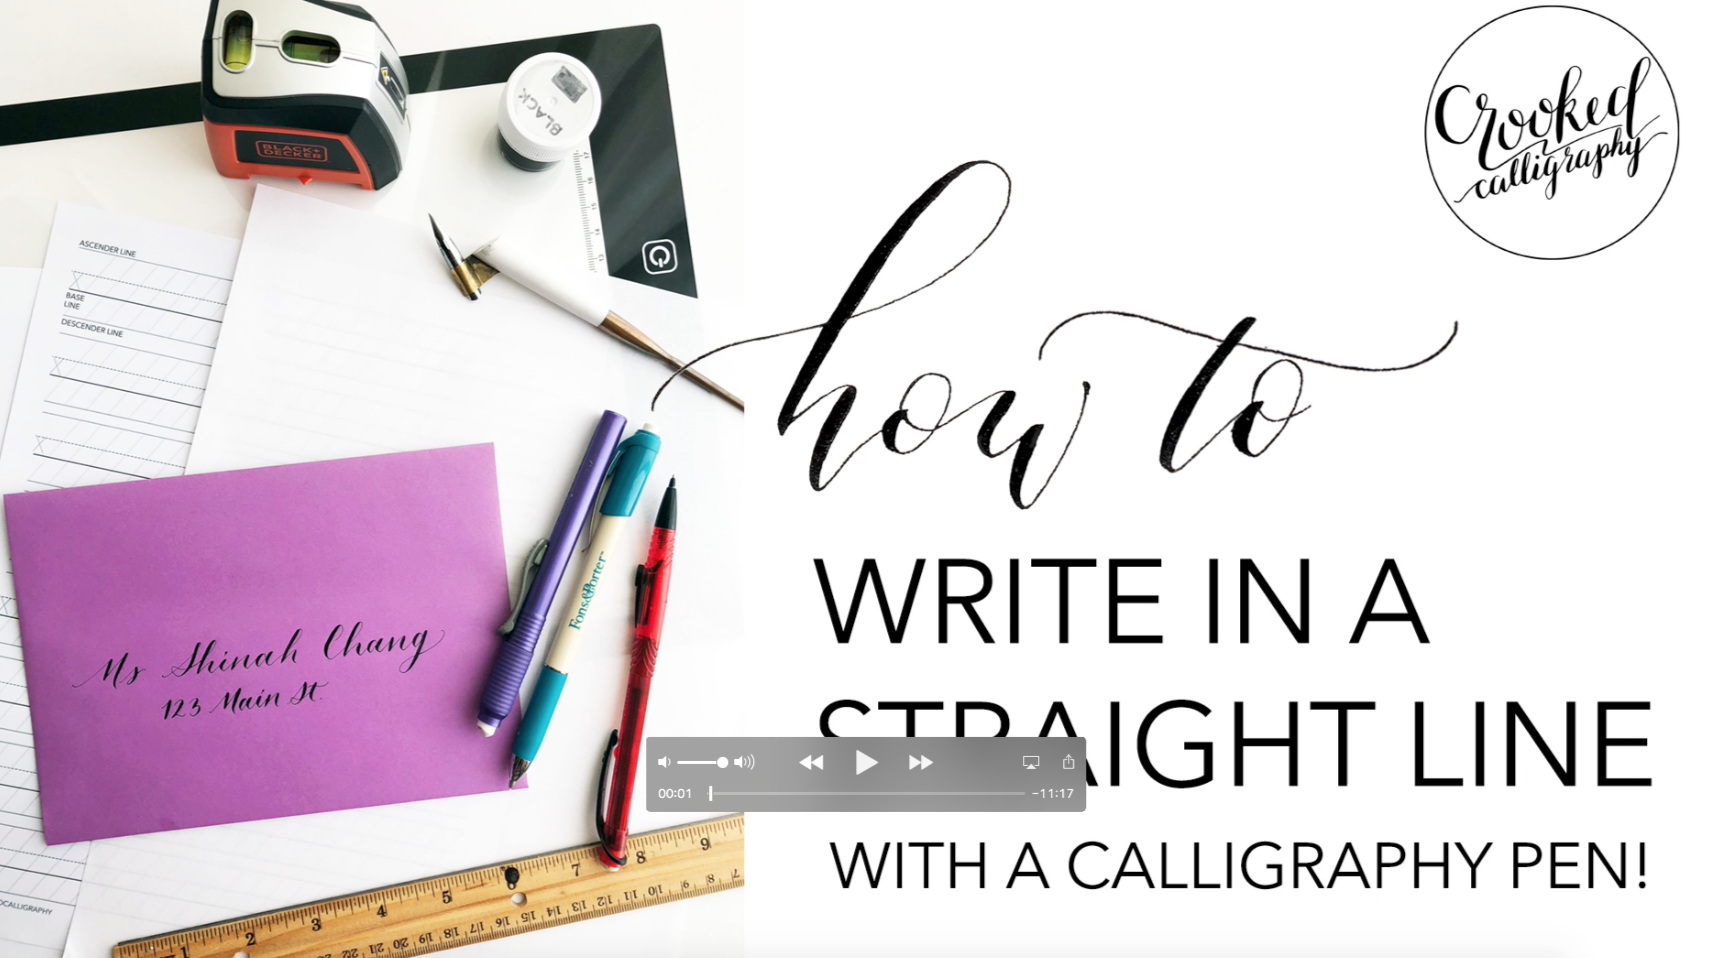 How to Write in a Straight Line